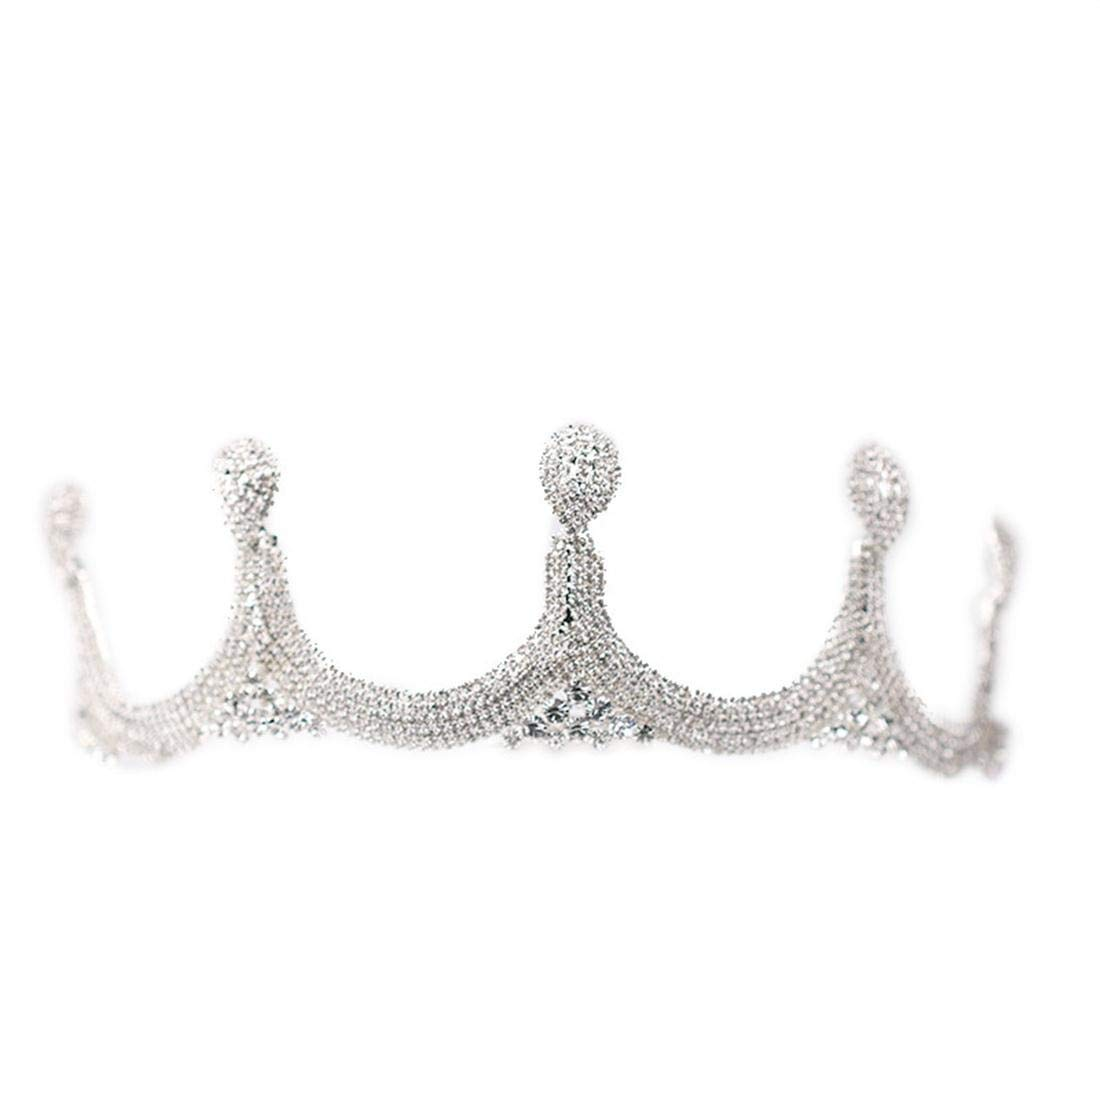 ZYDP Rhinestone Crown Wedding Dress Accessories Birthday Party Crown (Color : Silver) by ZYDP